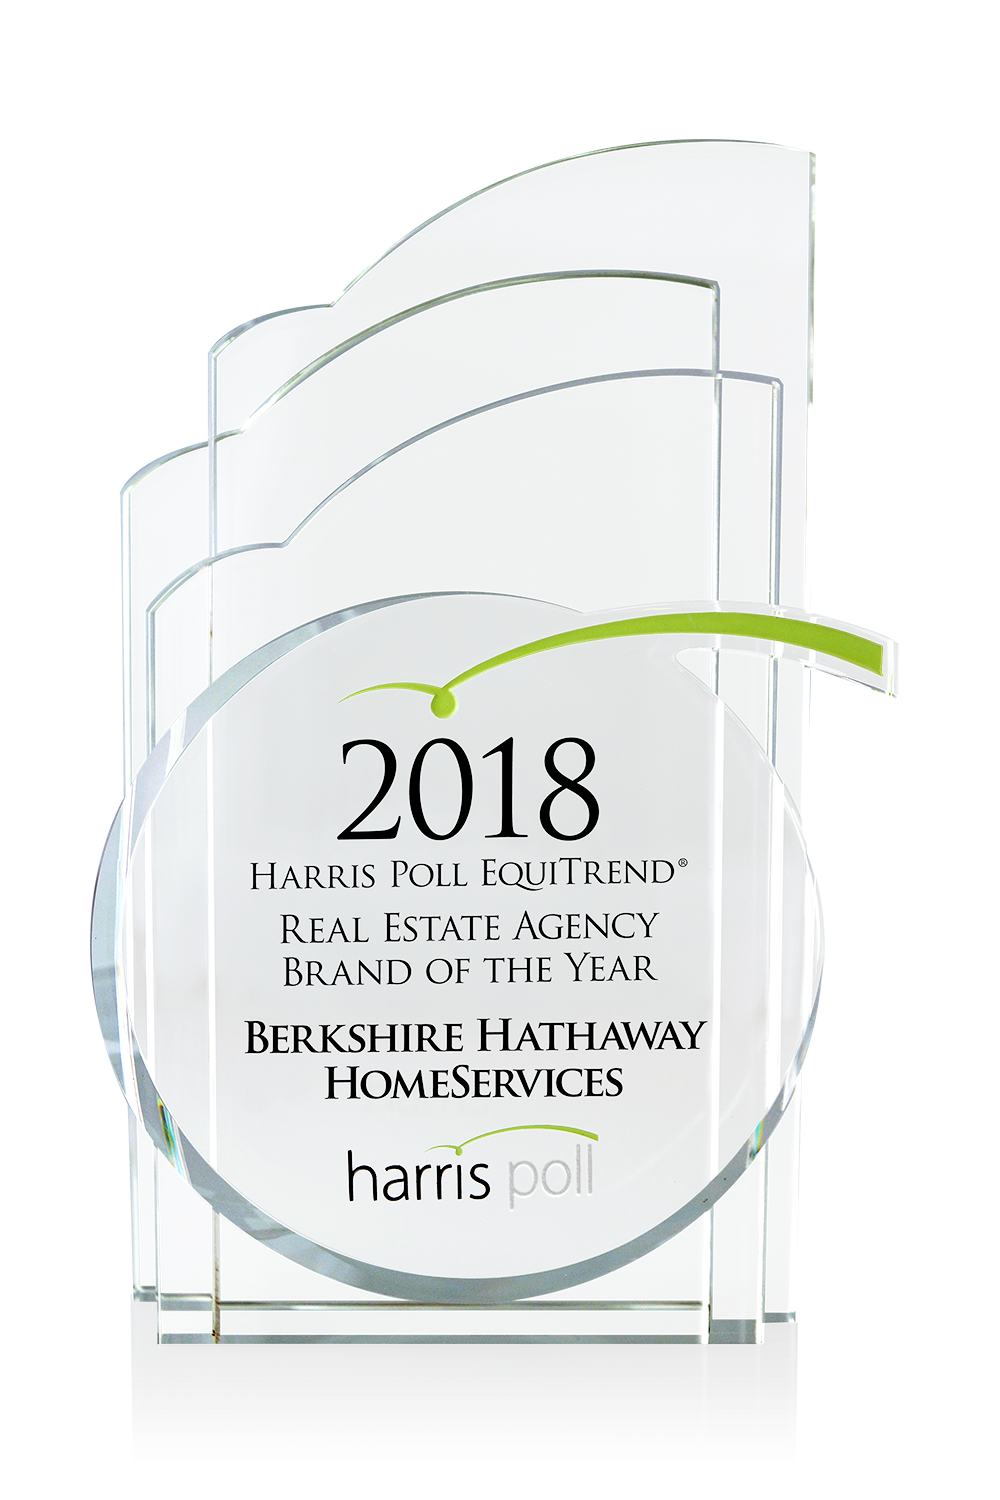 Harris Poll Real Estate Agency Brand of the Year 2018 award winner